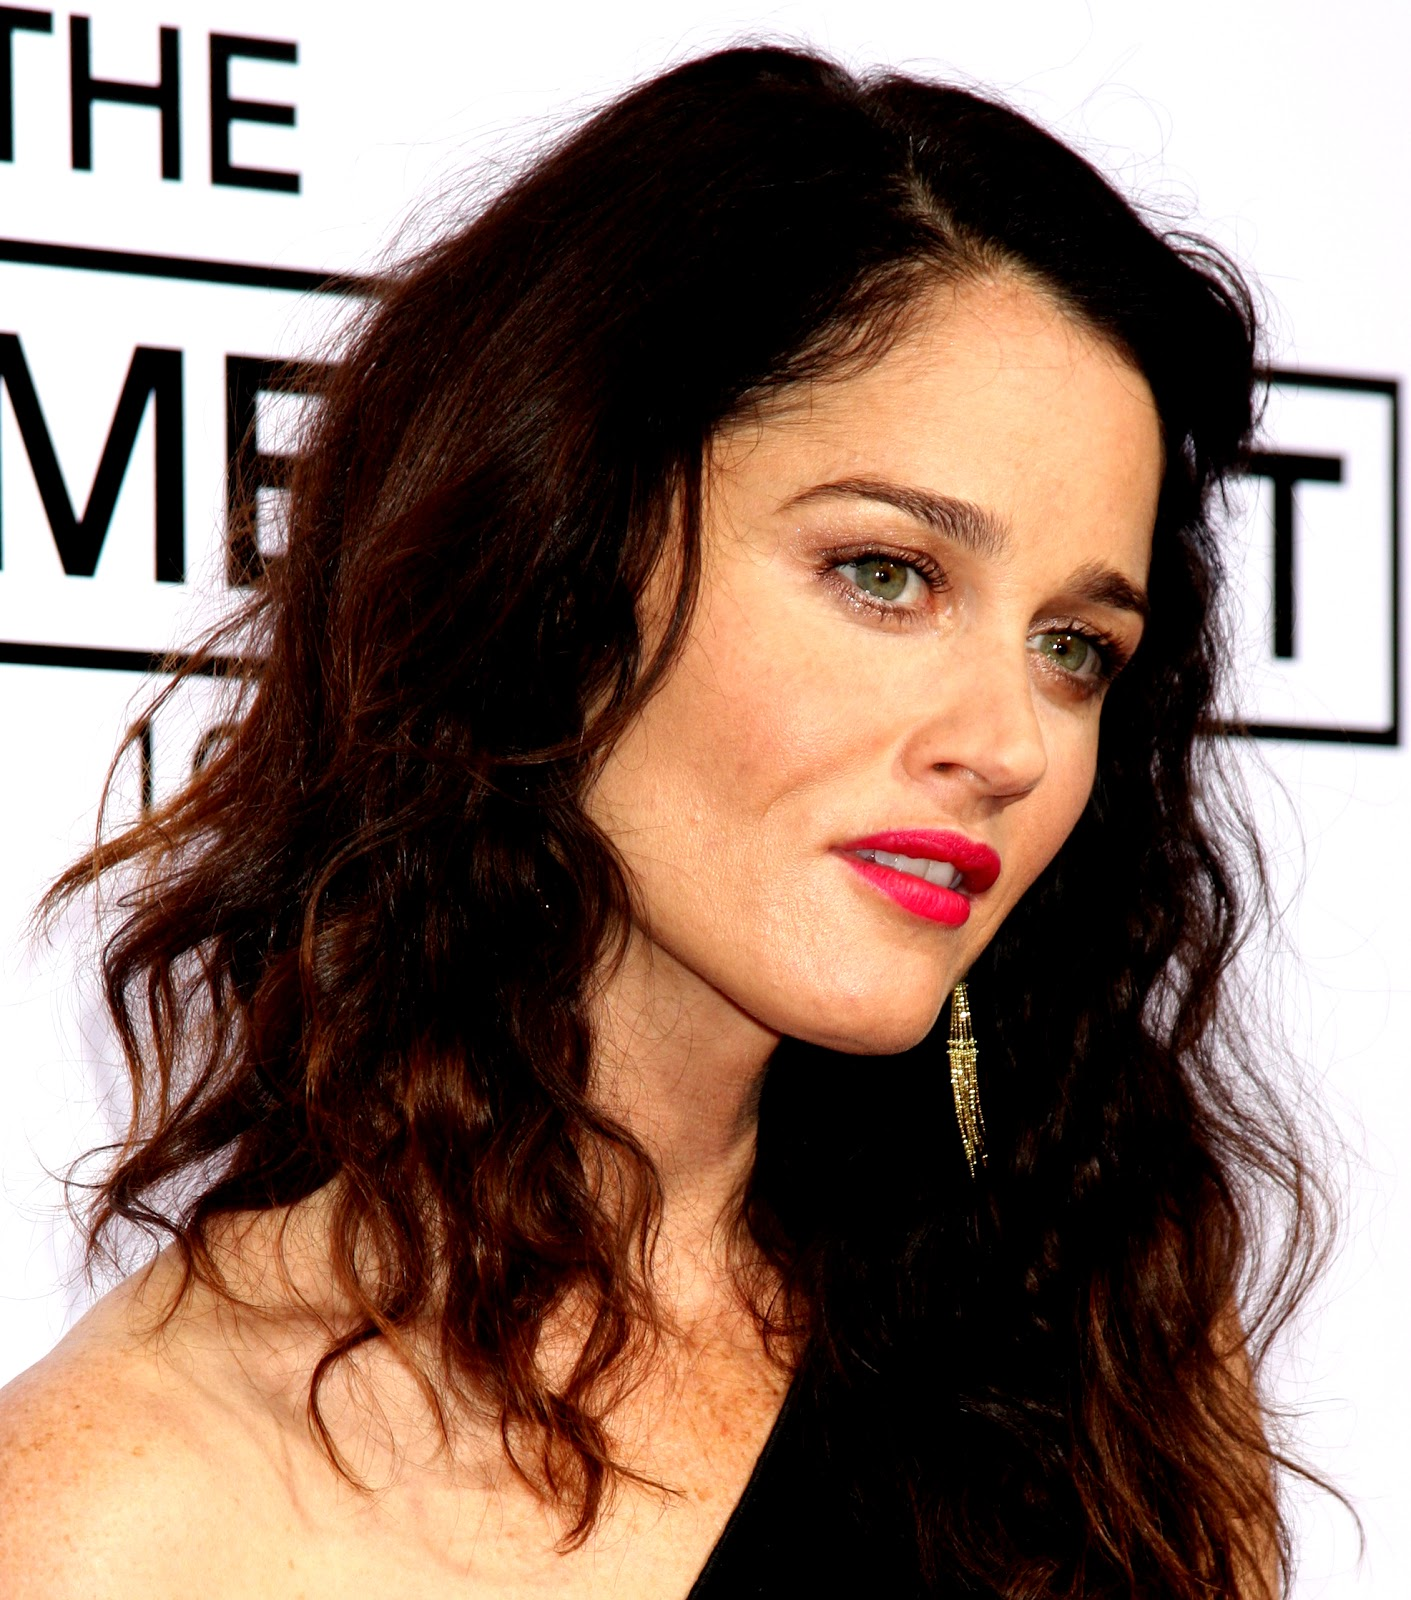 Robin Tunney - The Mentalist Wallpaper (31189910) - Fanpop |Robin Tunney The Mentalist